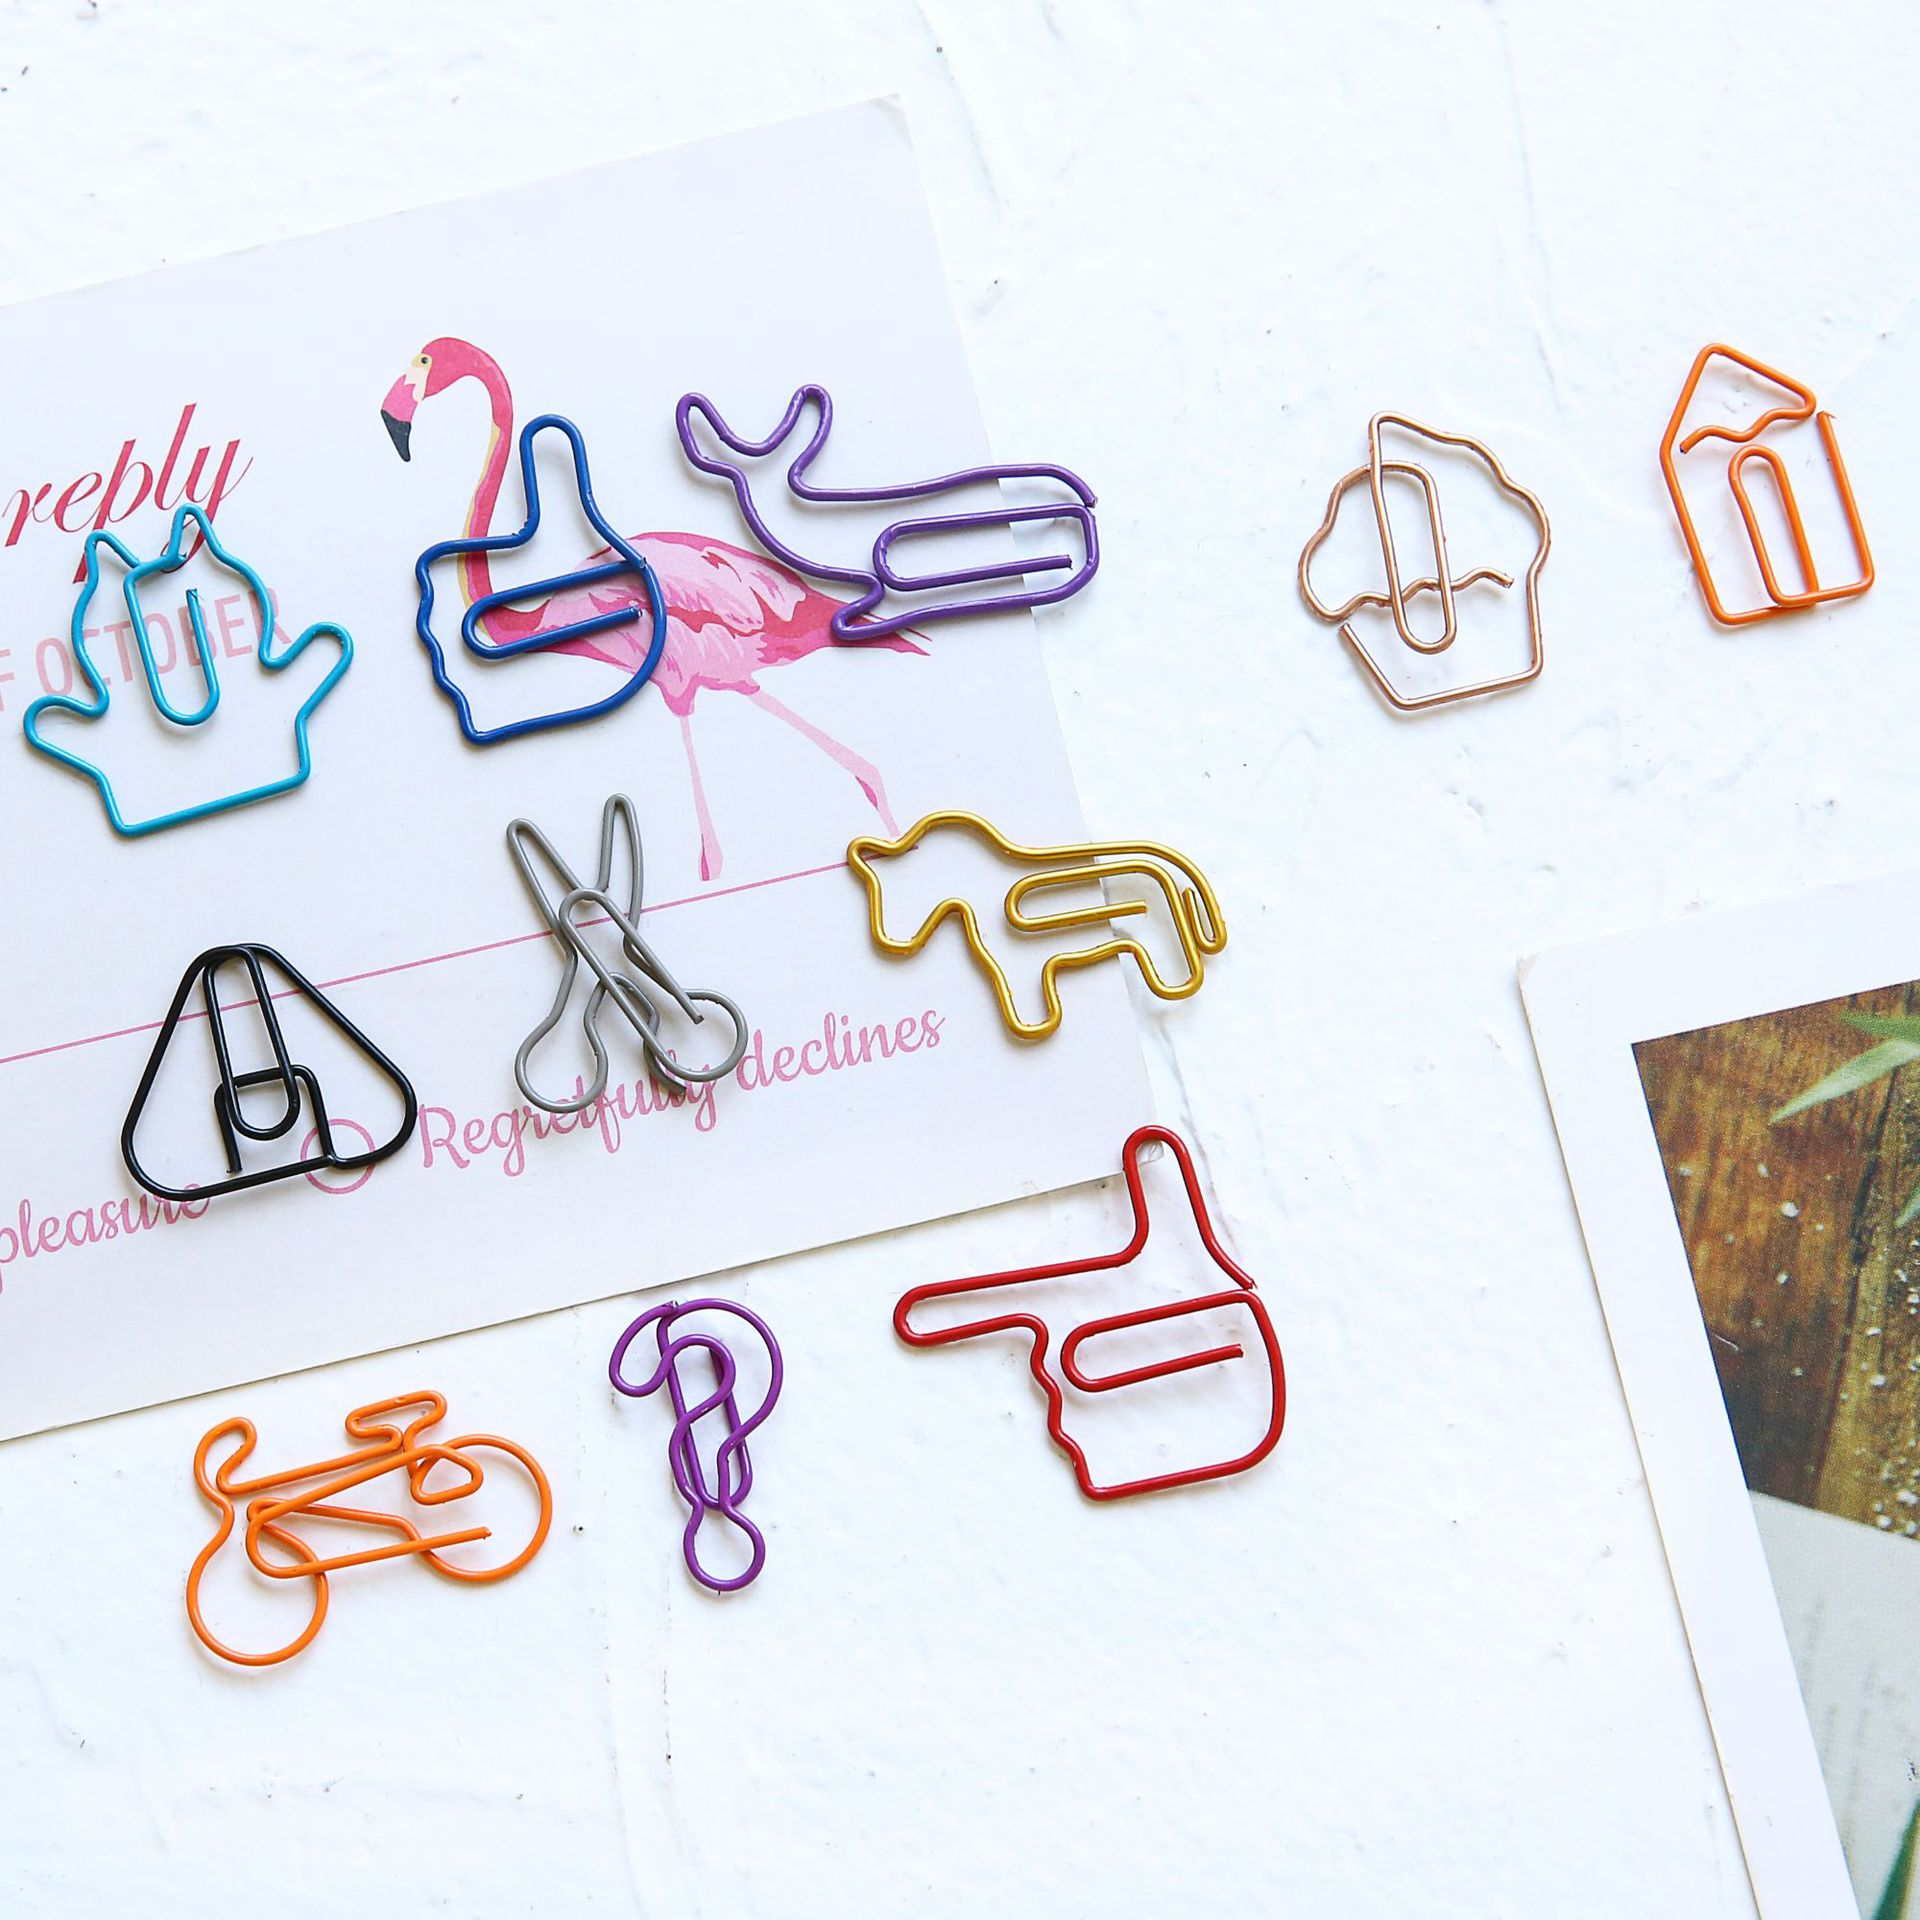 18pcs/lot Cute Aminal Bookmark Planner Rose Gold Office Mini Stationery Creative Paper Clips Binder Clips Decorative